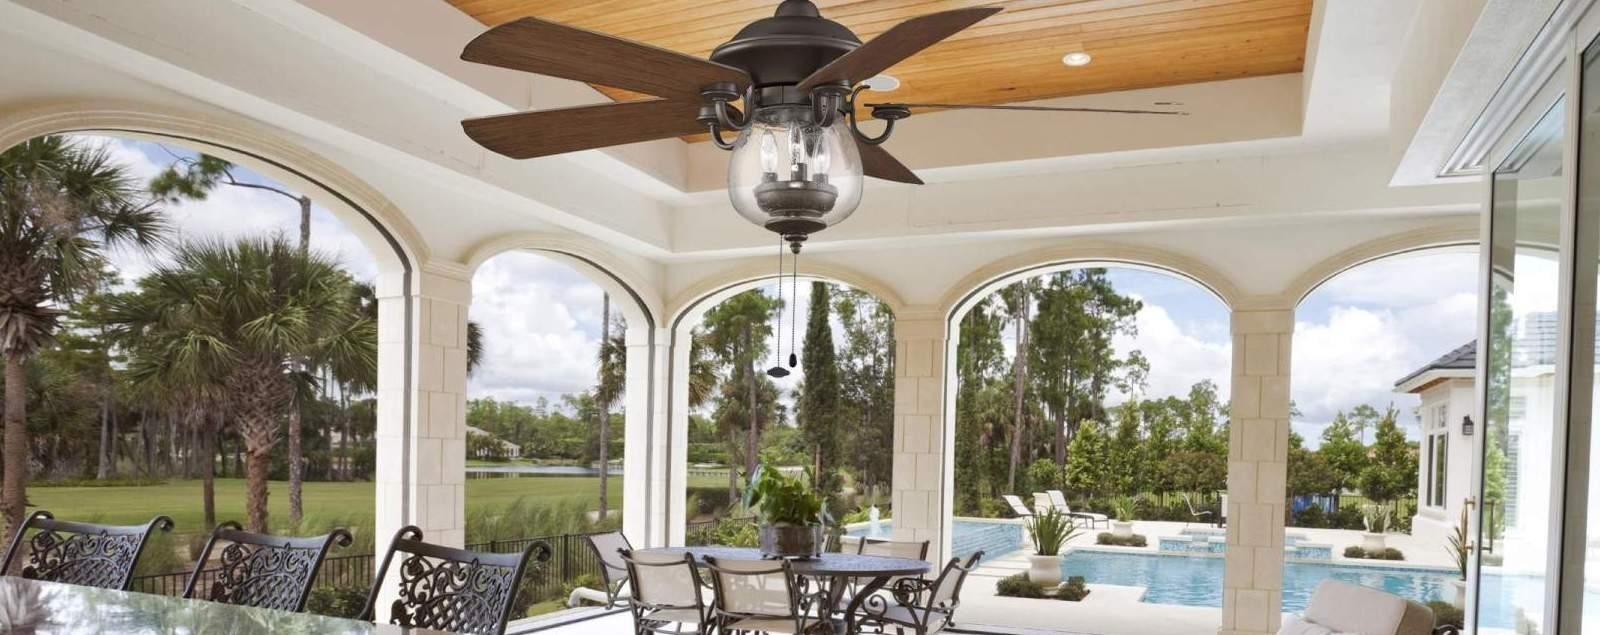 Outdoor Ceiling Fans – Choose Wet Rated Or Damp Rated For Your Space! Pertaining To Current Wet Rated Outdoor Ceiling Lights (View 13 of 20)